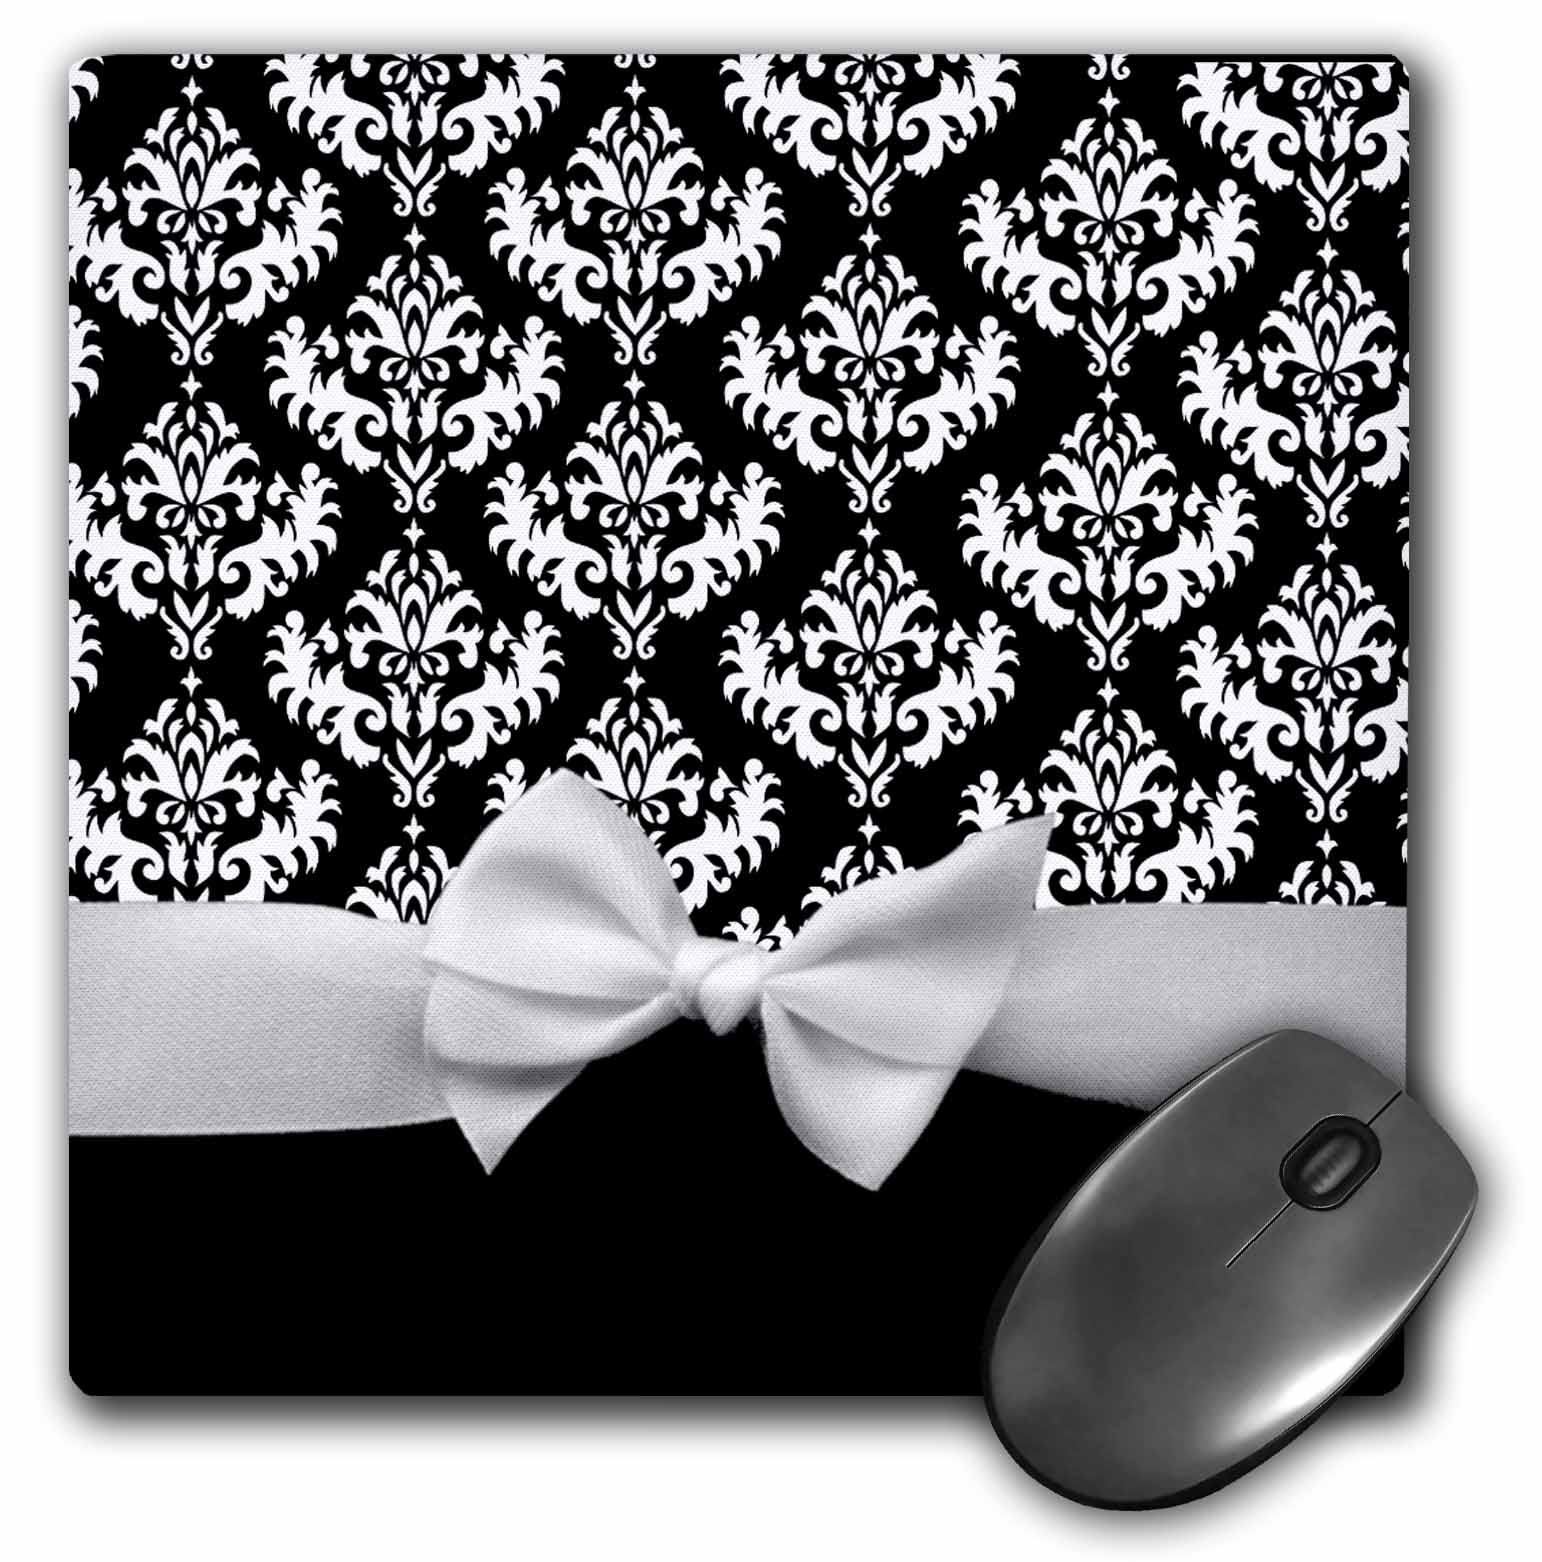 3dRose Black and White Damask pattern with elegant and classy white ribbon bow for stylish women, Mouse Pad, 8 by 8 inches